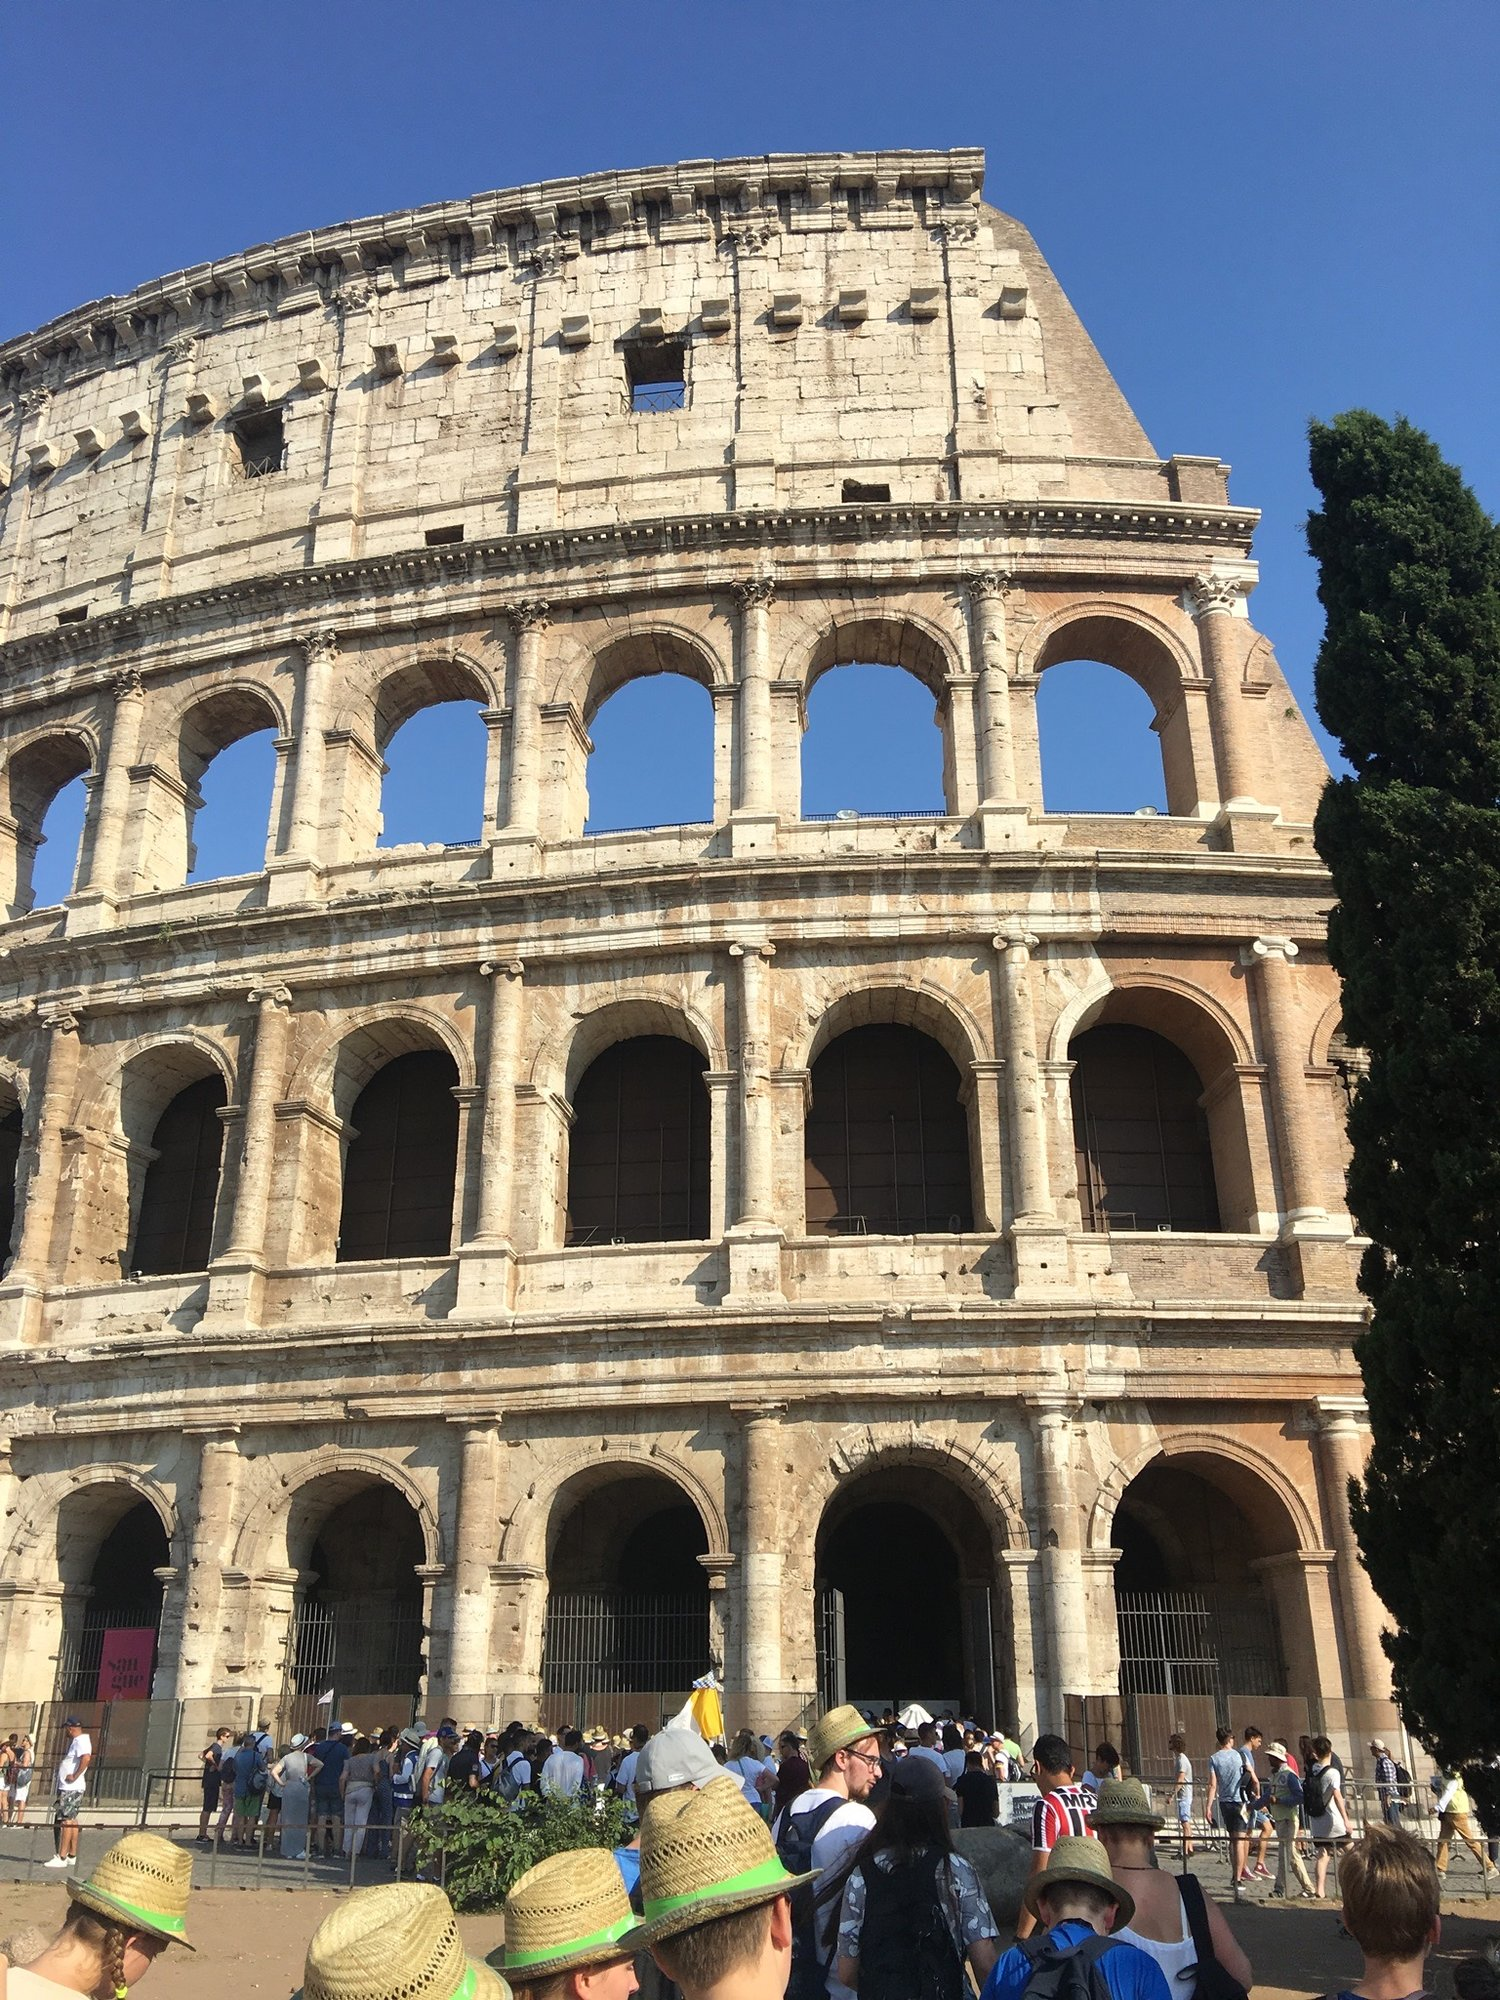 The Coliseum dates back to the year 72 AD - 80 AD, is the largest amphitheater ever built and was selected as one of the 7 Wonders of the World in 2007.